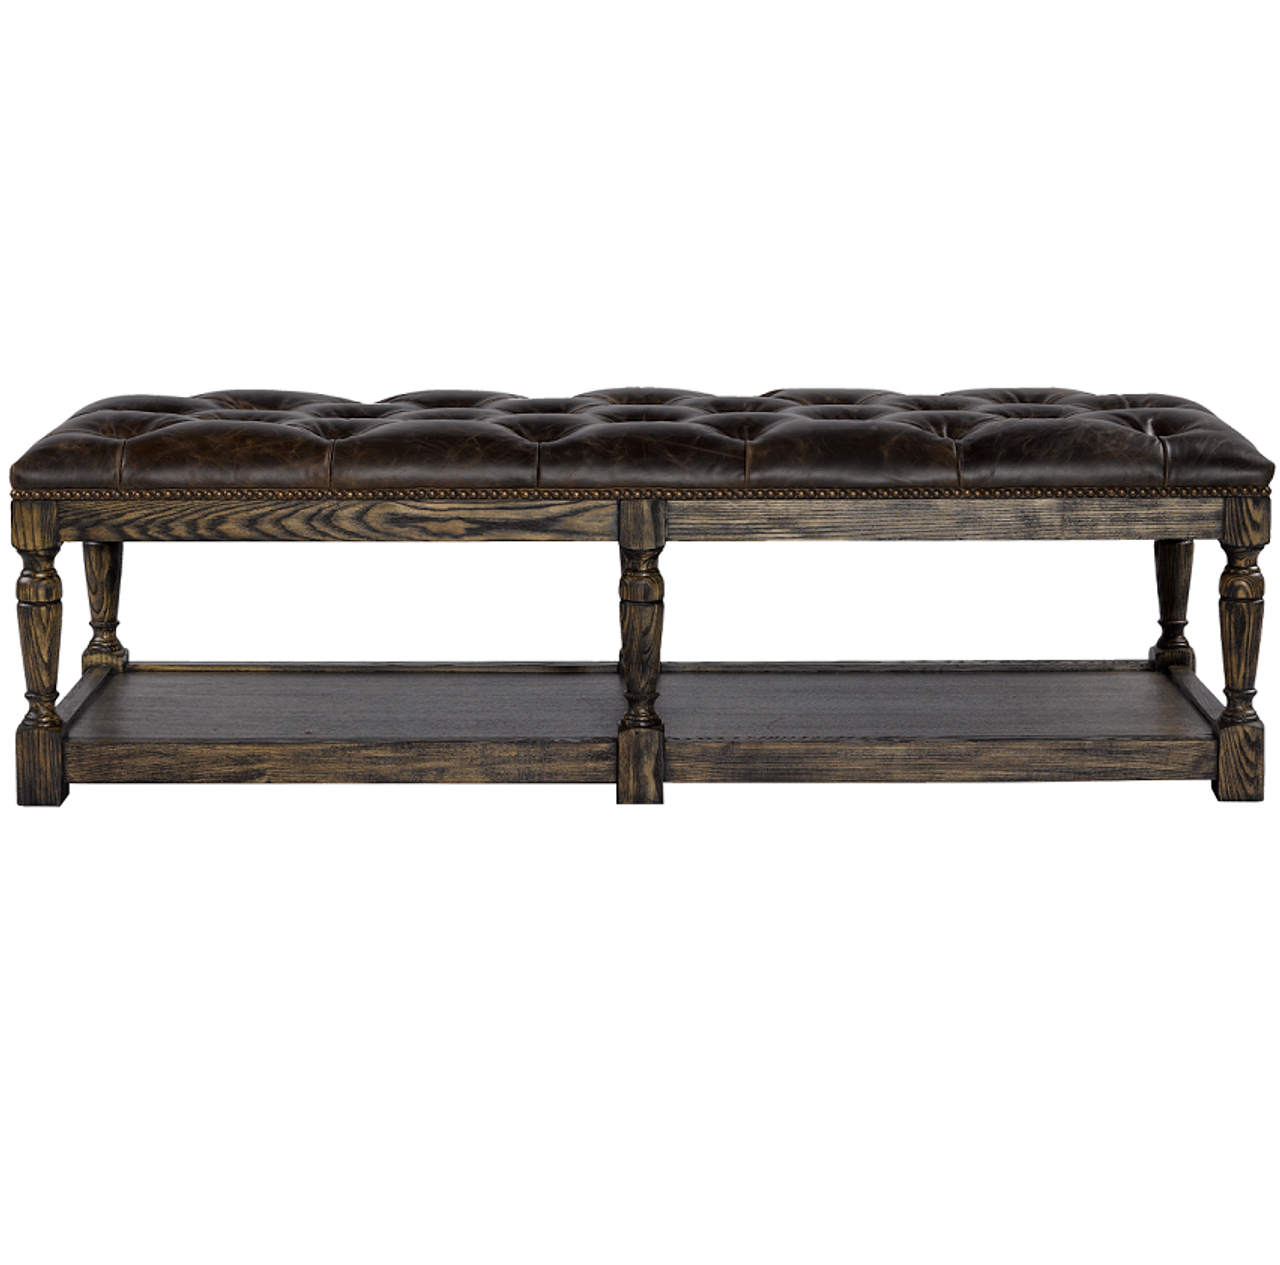 Valencia Leather Upholstered Tufted Bedroom Bench Zin Home : leatherottoman812581330647156 from www.zinhome.com size 852 x 842 png 346kB